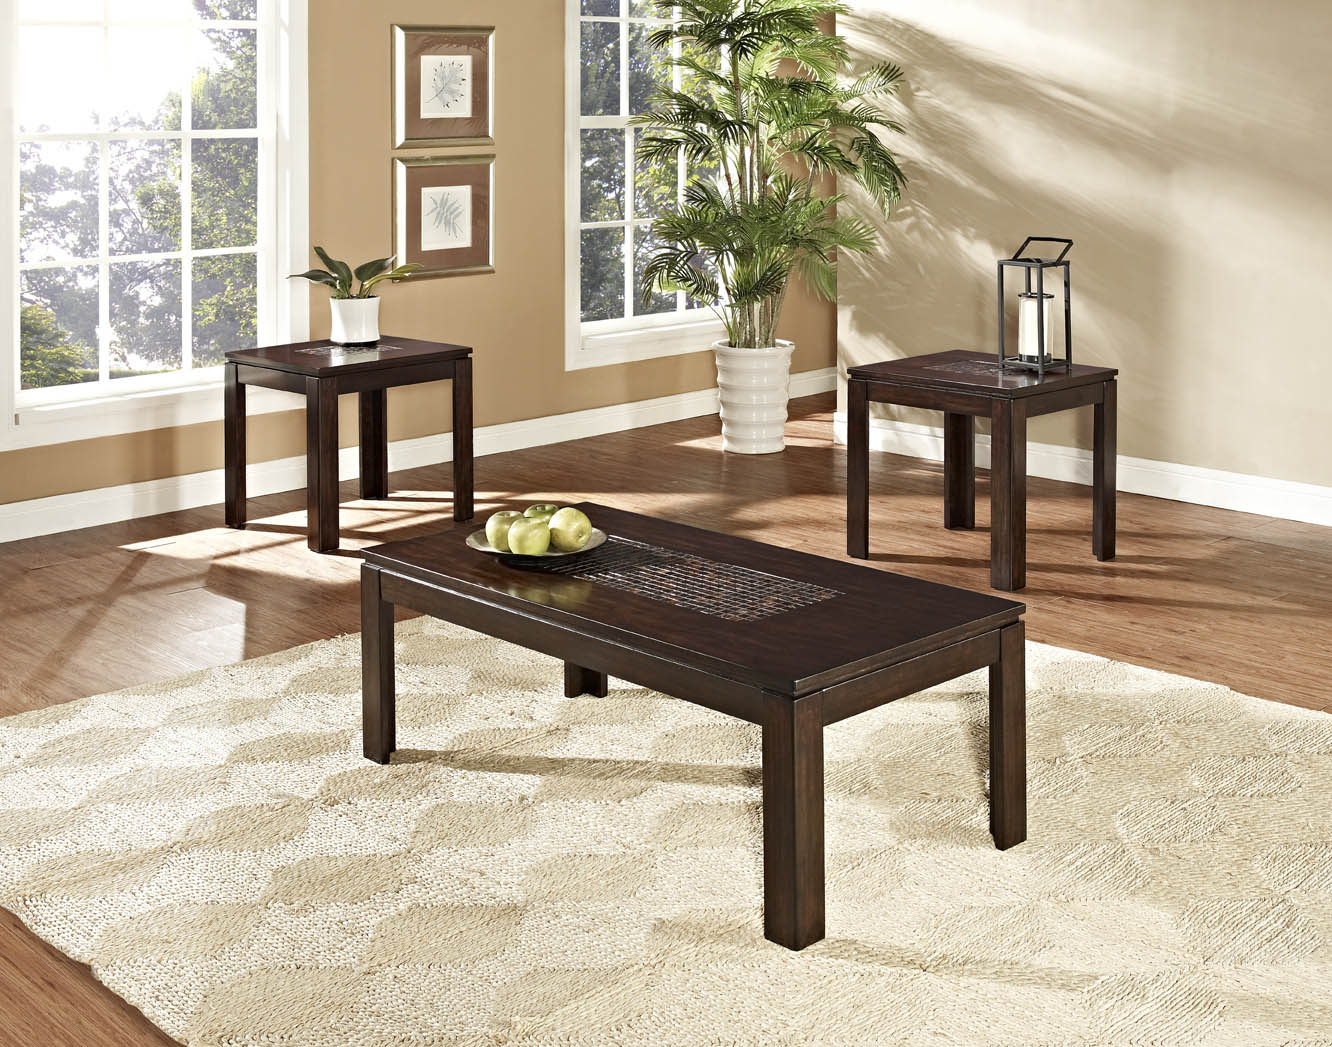 Union Furniture Livingroom 28183 Tables